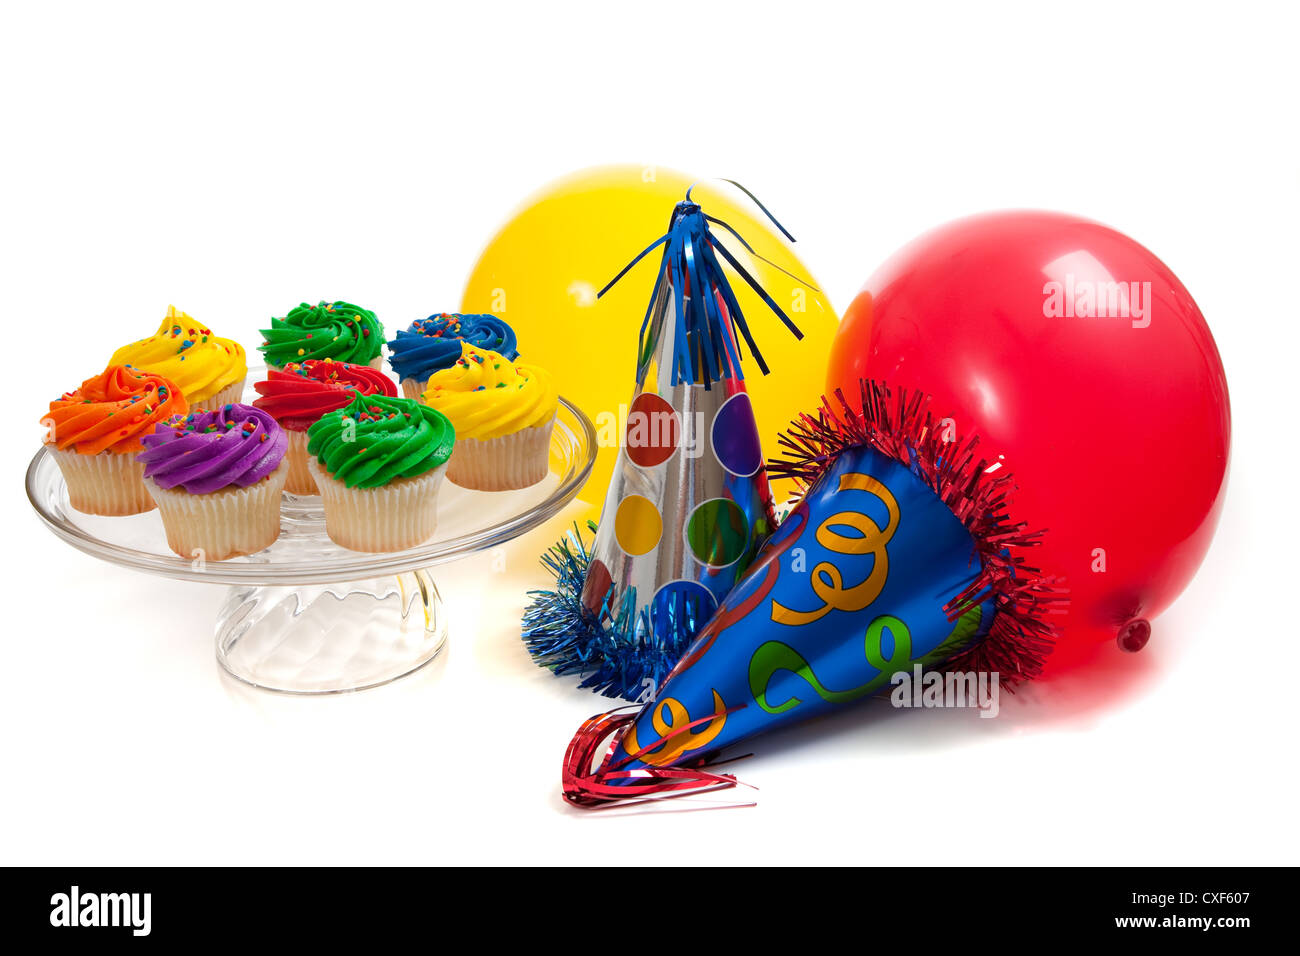 Brightly colored frosted cupcakes with birthday hats and balloons in the background - Stock Image